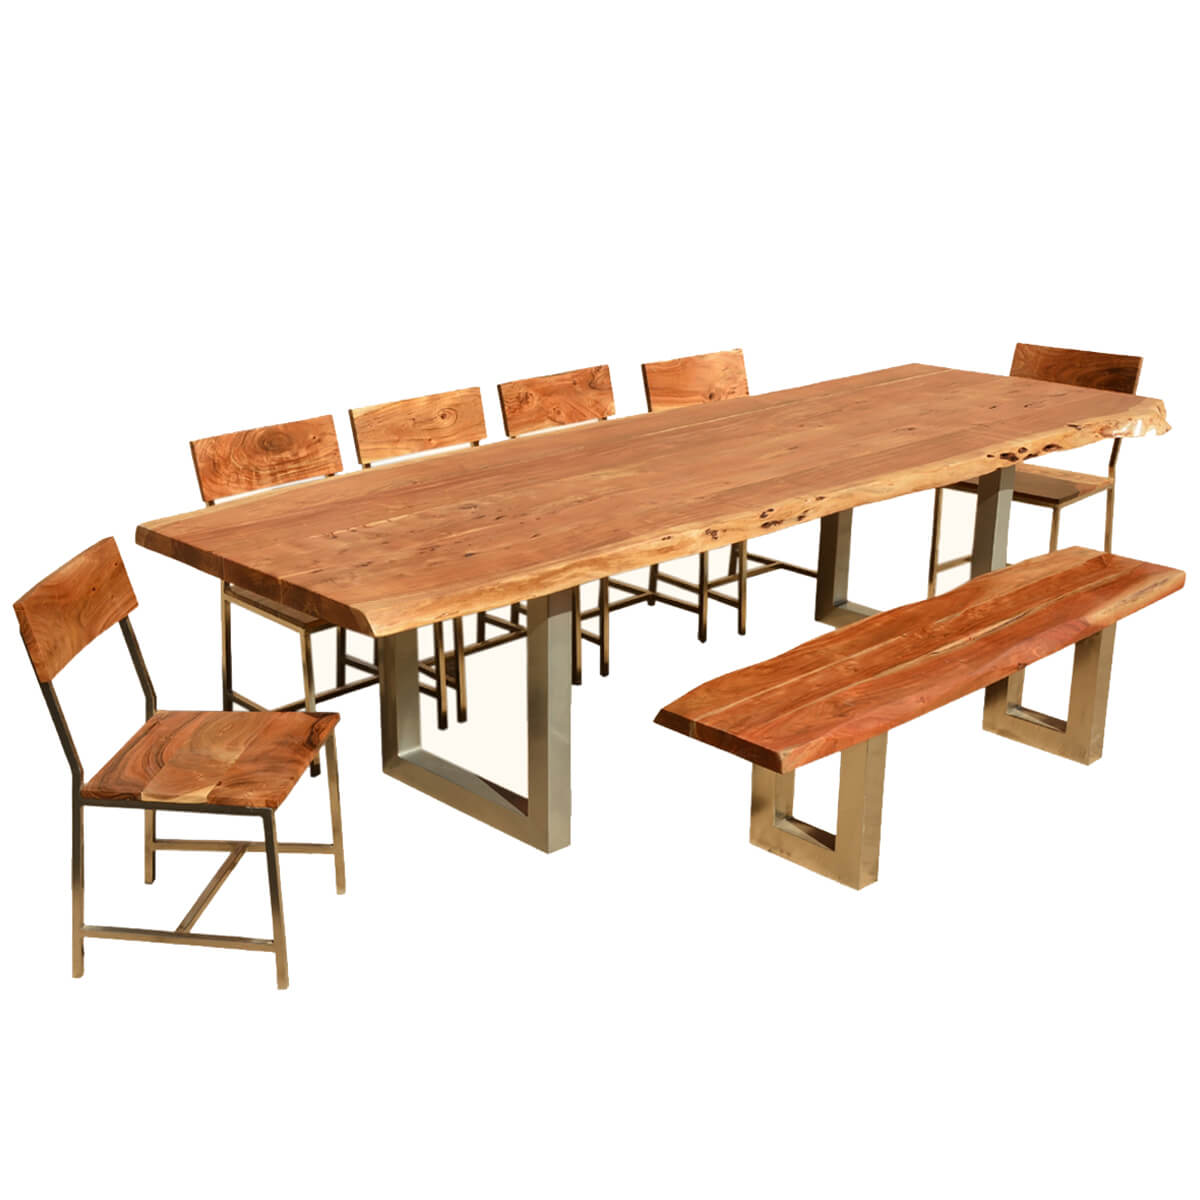 "Kitchen Tables With Benches And Chairs Table Wood: 117"" Live Edge Dining Table W 6 Chairs & Bench"